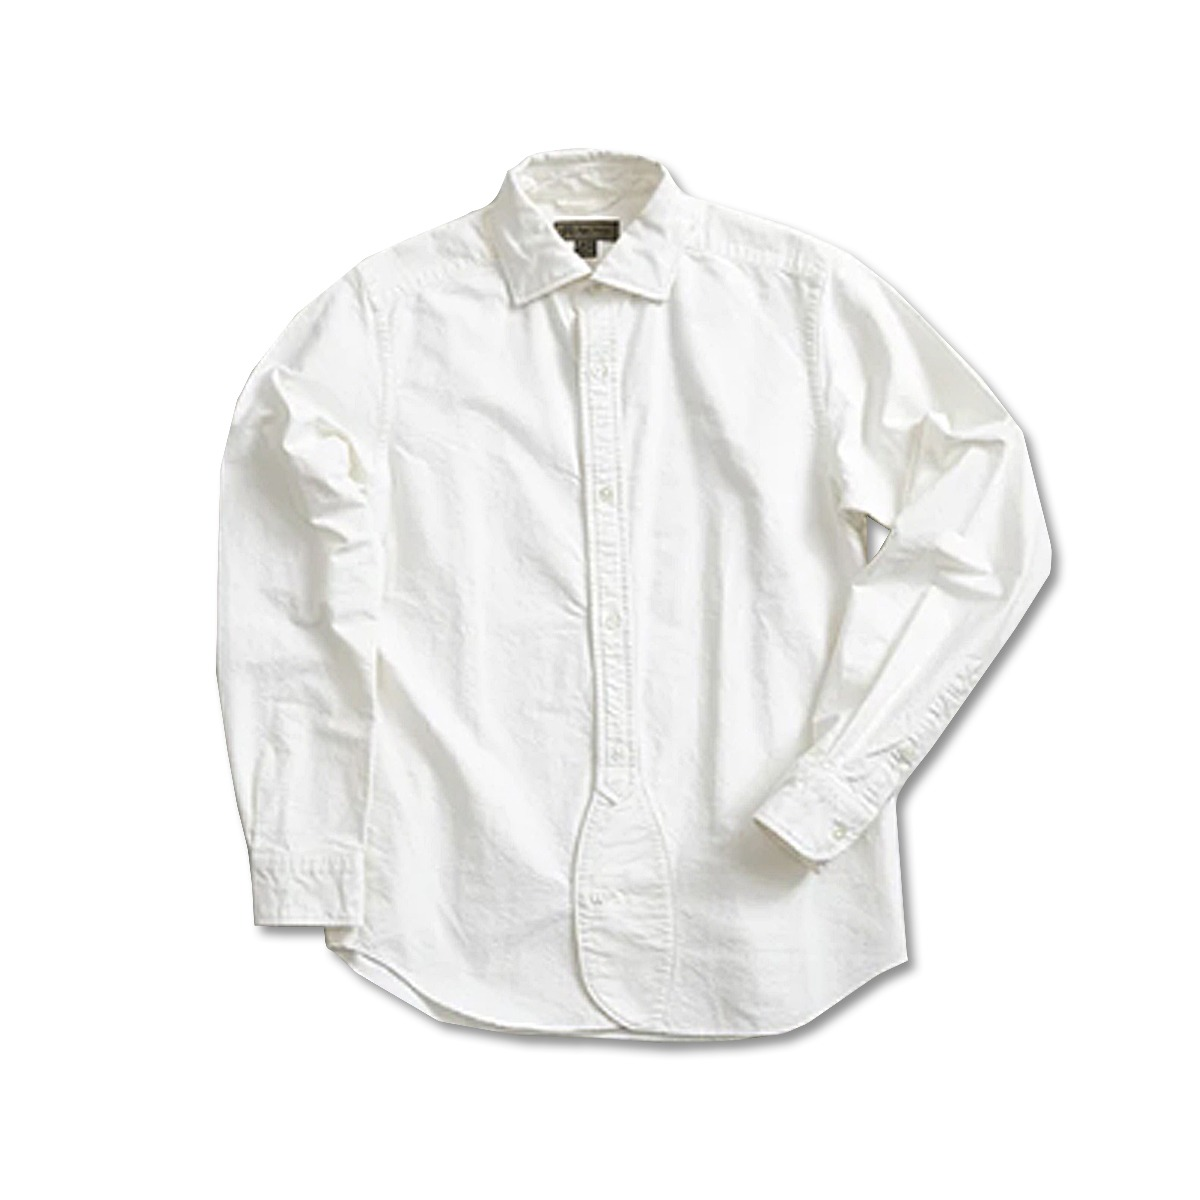 [NIGEL CABOURN] BRITISH OFFICERS SHIRT 'WHITE'